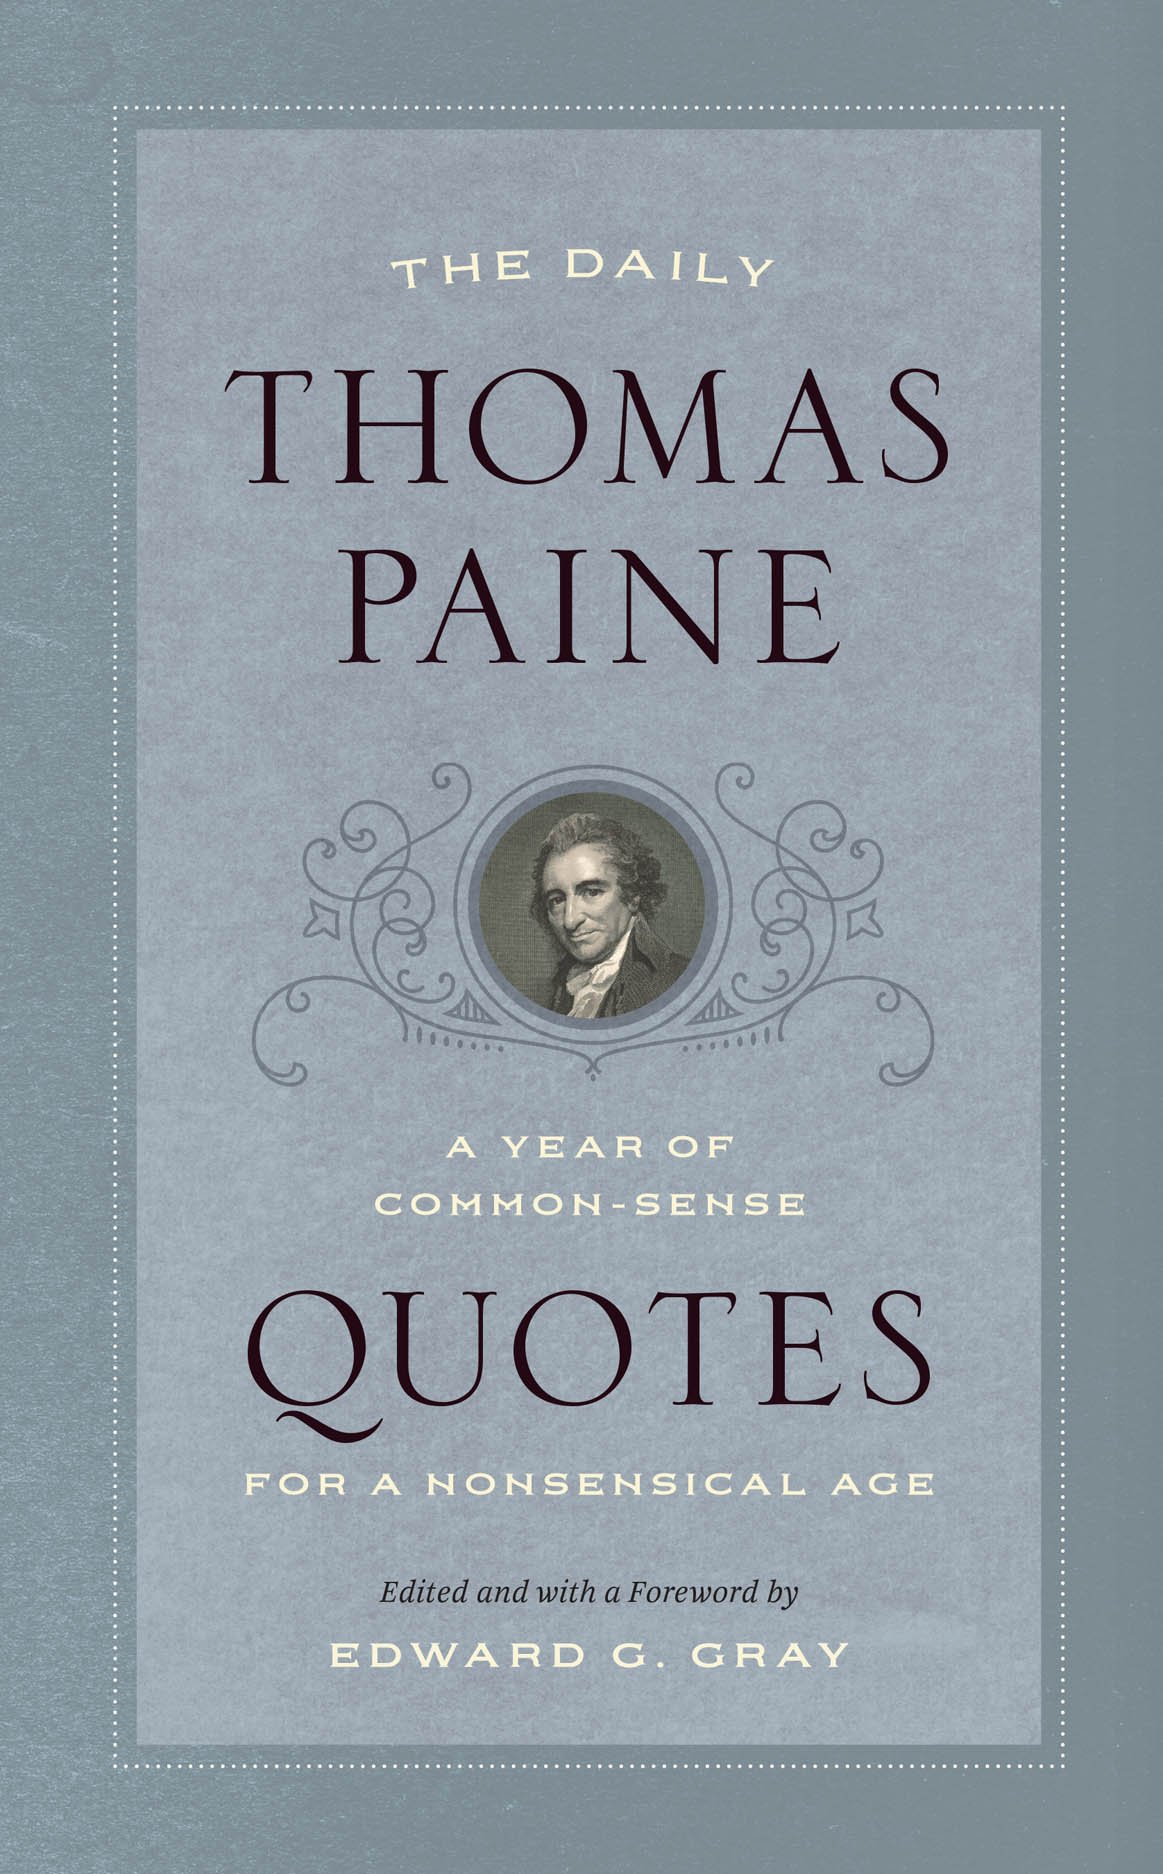 The Daily Thomas Paine